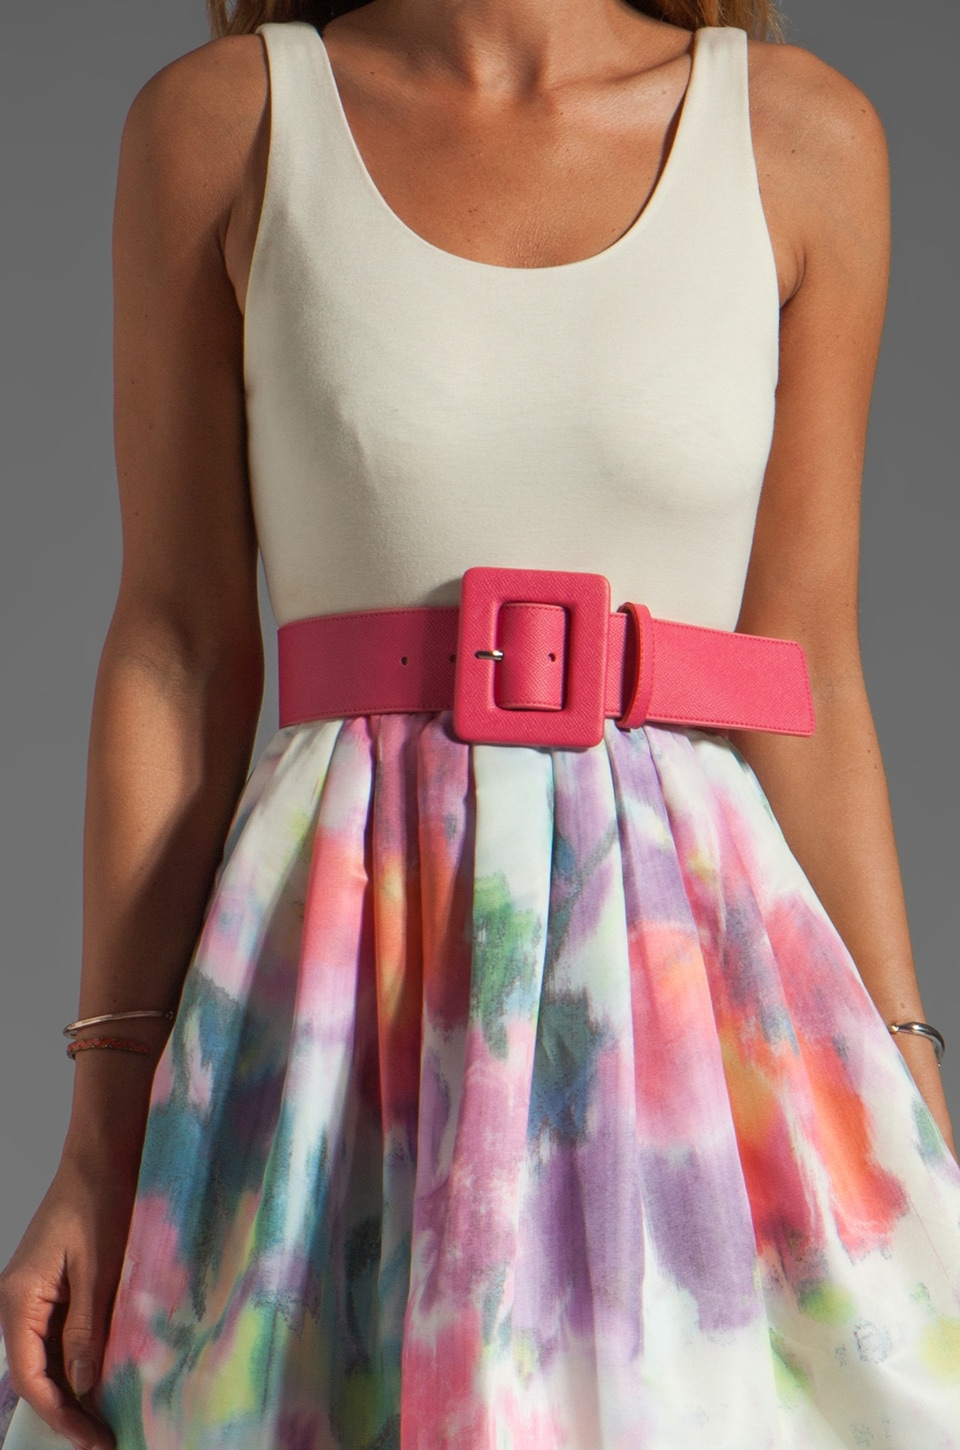 Alice + Olivia Omega Flower Puff Dress with Belt in Antique